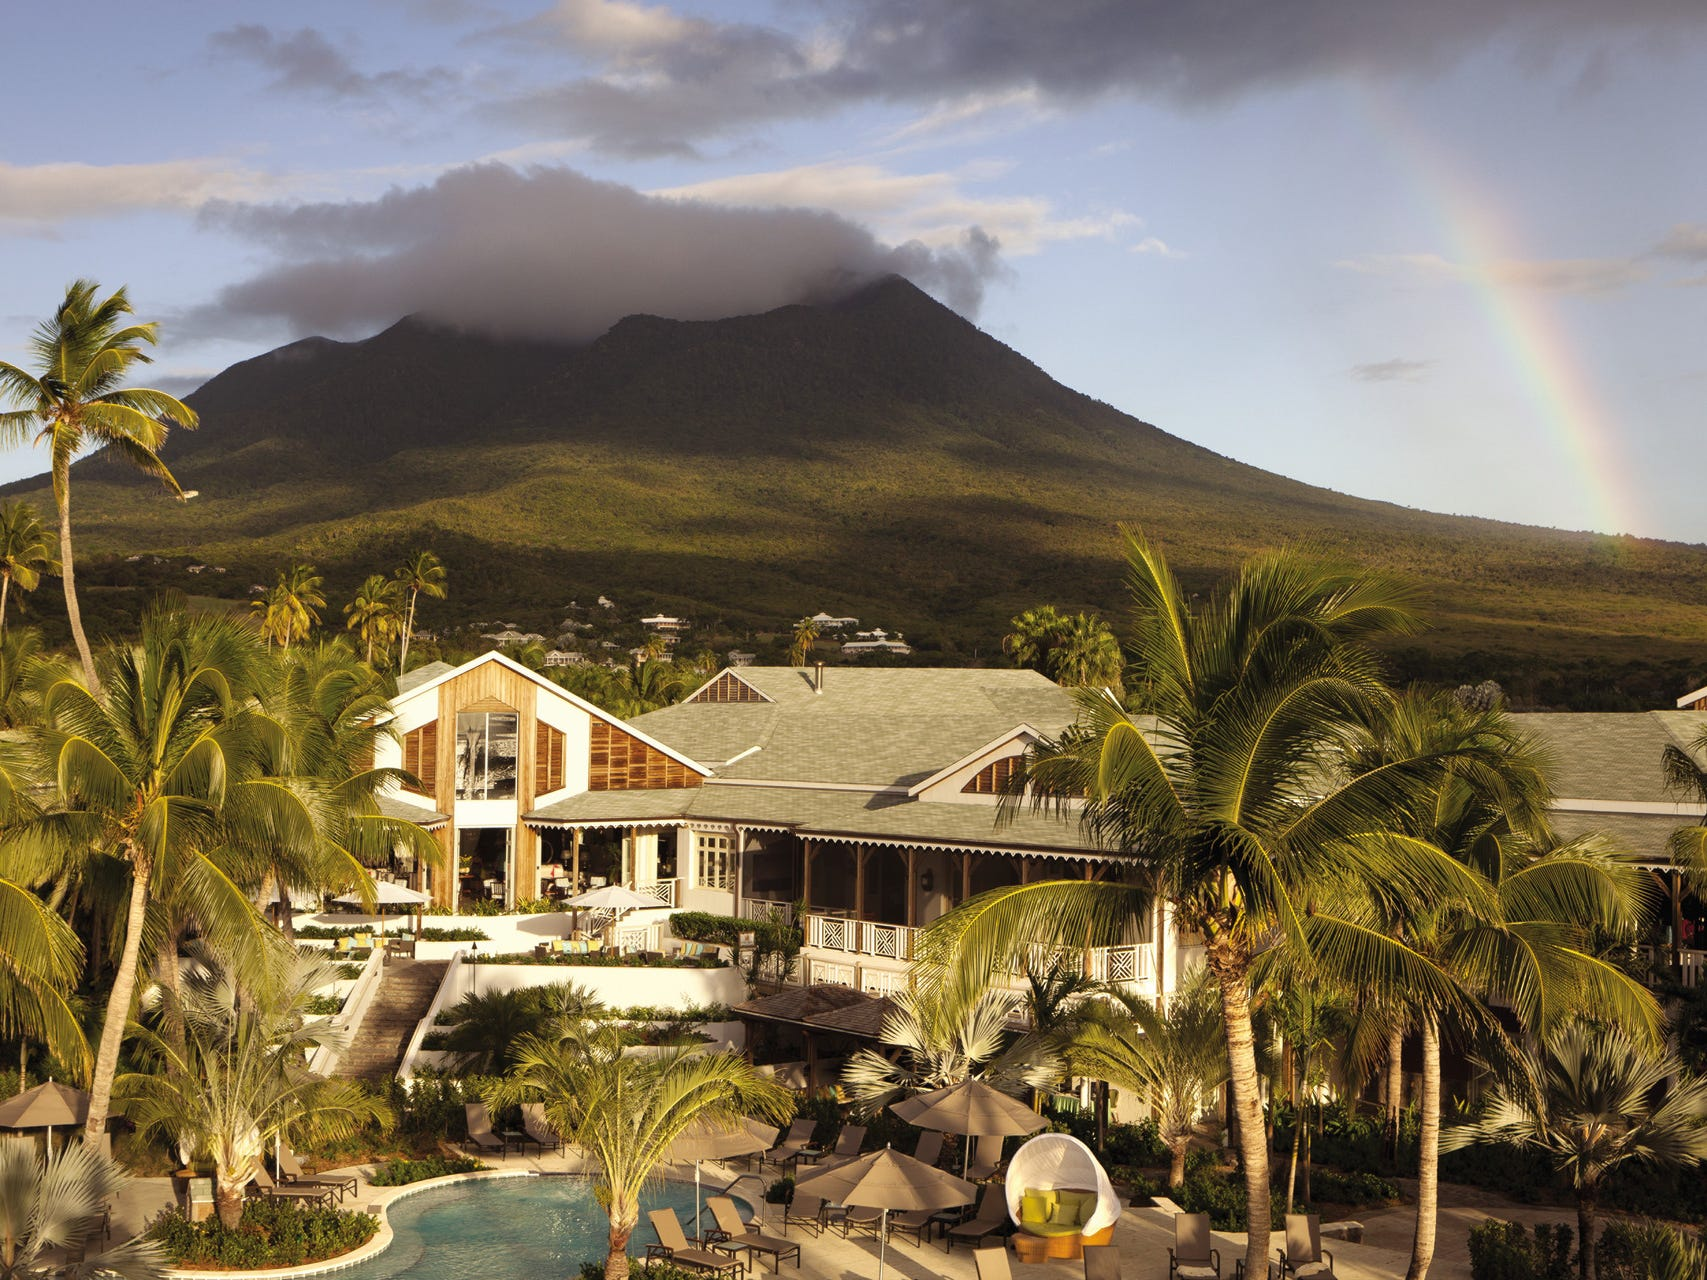 After a multimillion-dollar facelift, Four Seasons Resort Nevis unveils its new look on Dec. 10. A fresh take on an island landmark that opened more than a quarter-century ago, the resort is home to 189 updated rooms and suites and 50 villas.